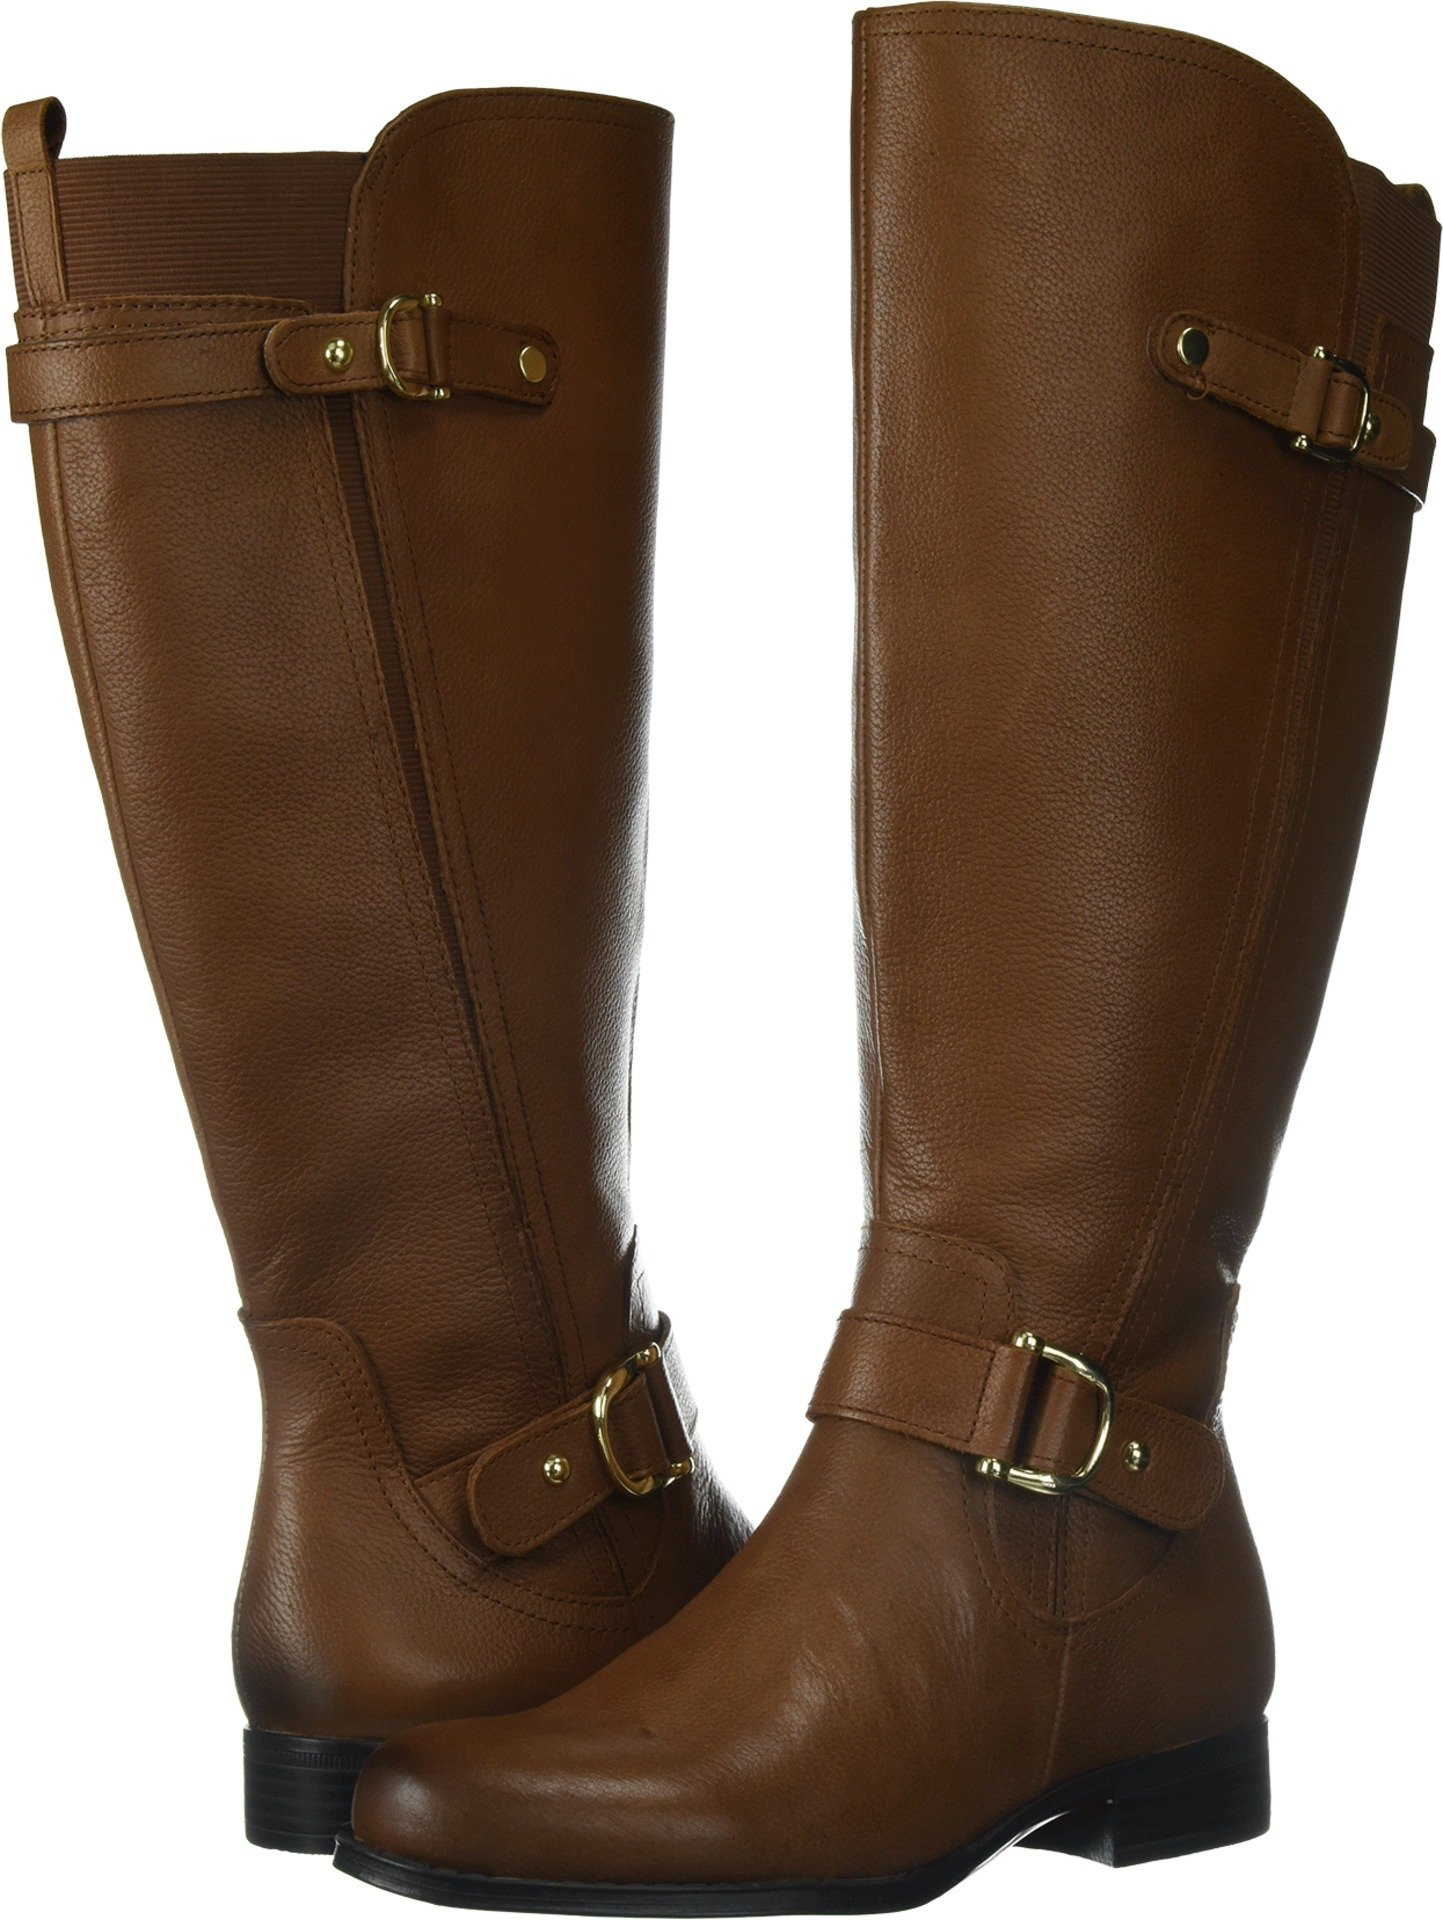 Naturalizer Women's Jenelle Wide Calf Riding Boot, Banana Bread, 8 2W US